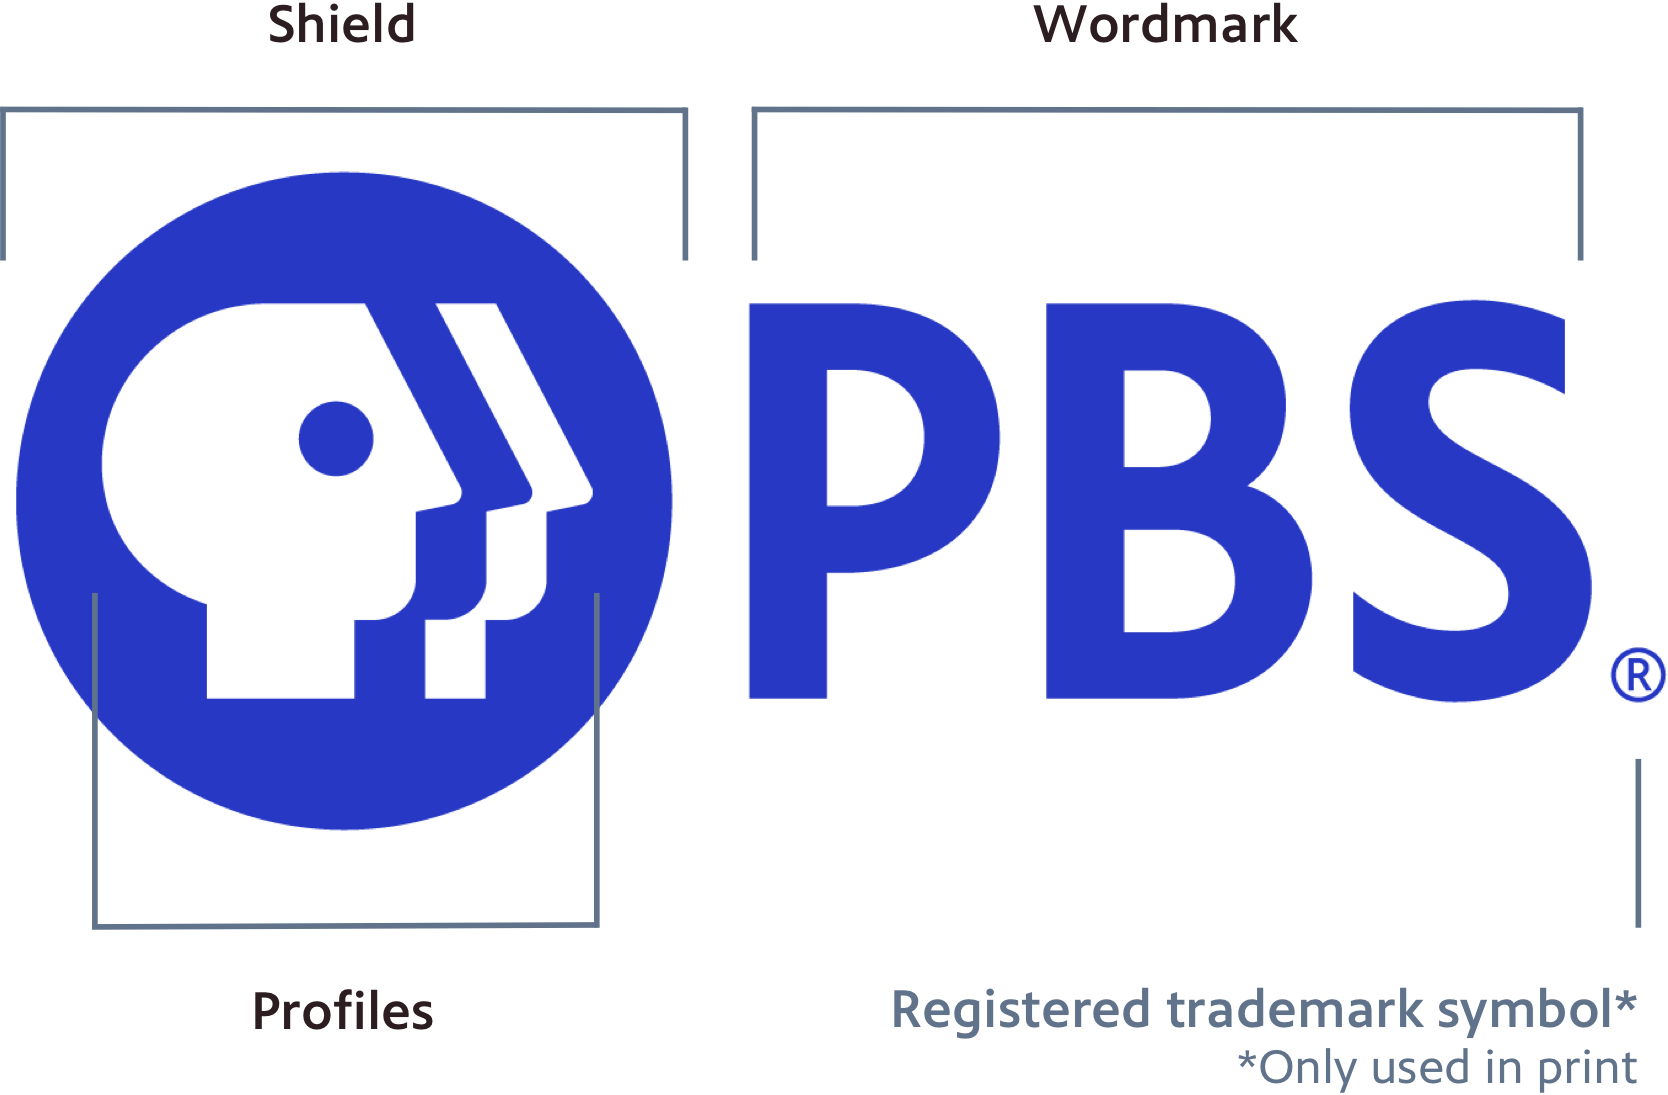 Brand mark elements of the PBS logo